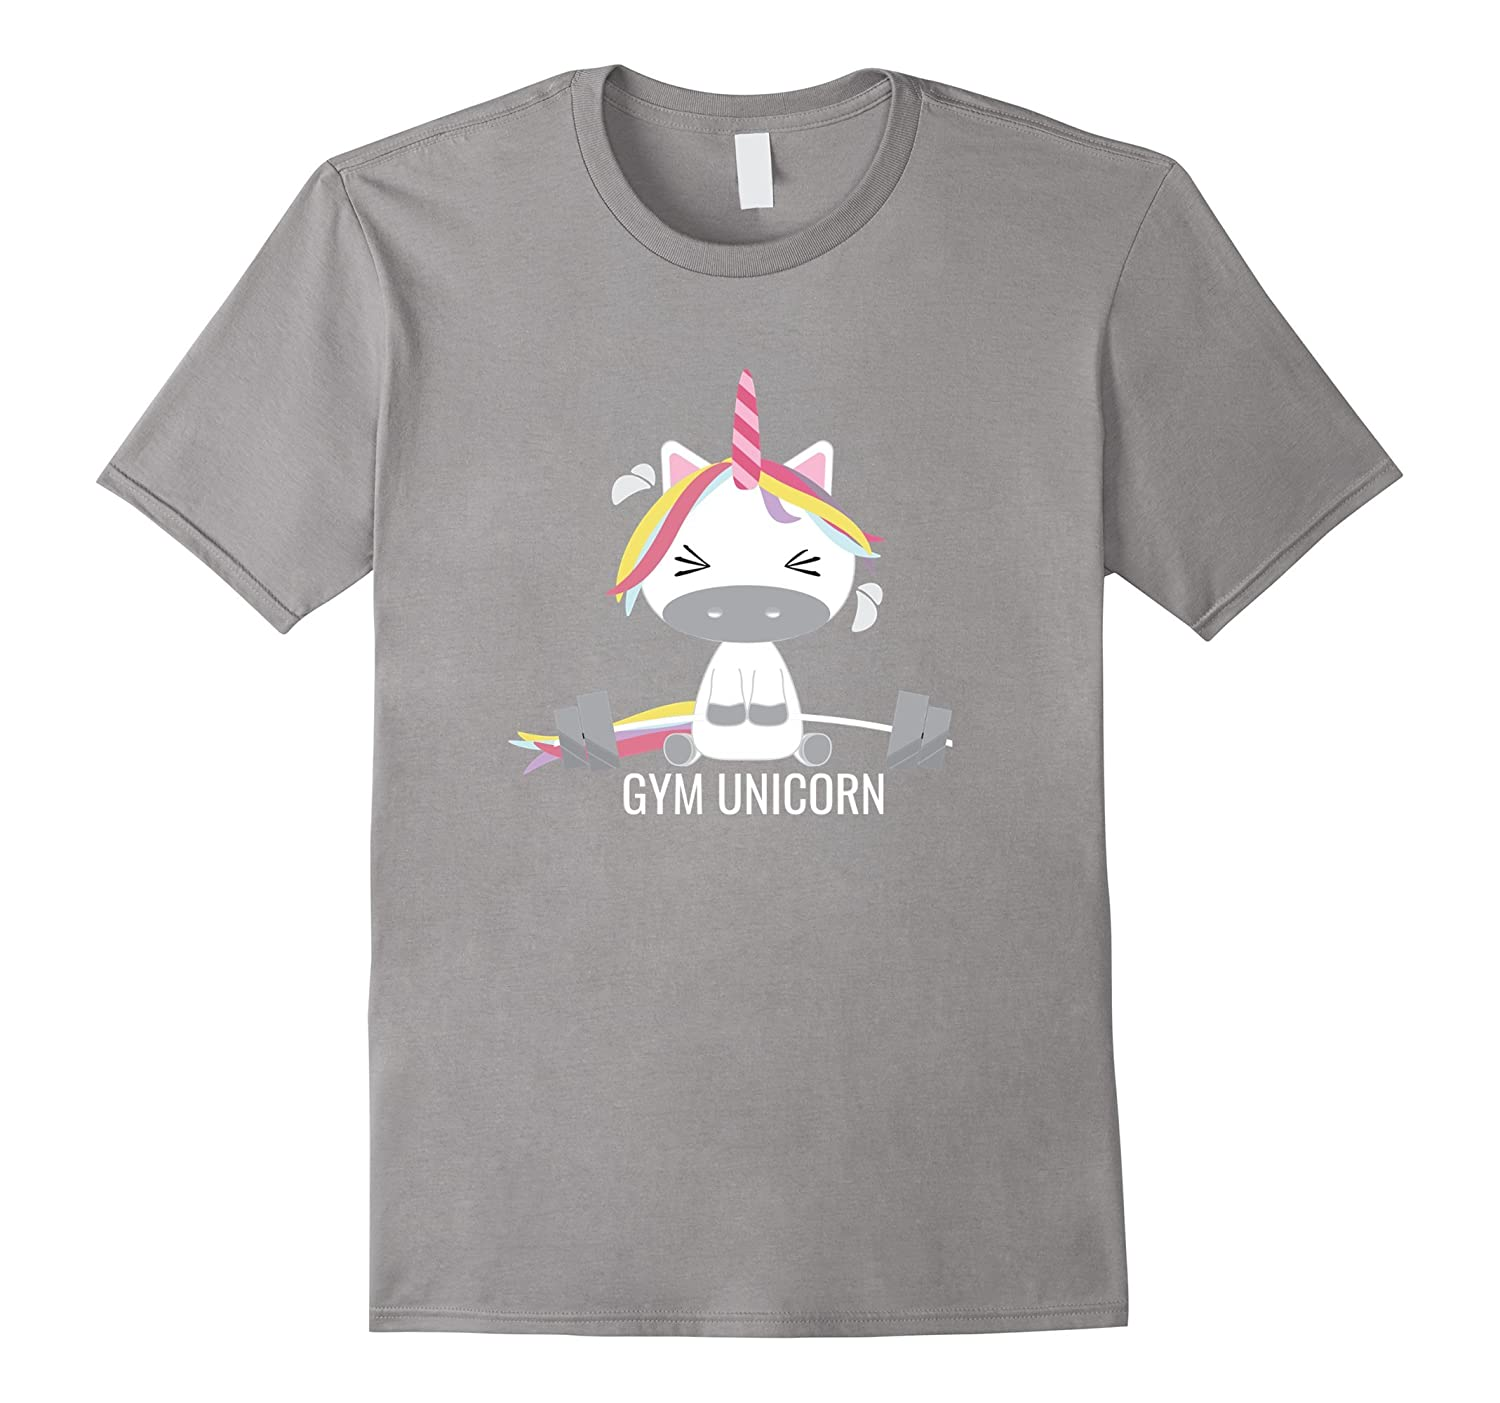 Gym Unicorn T-Shirt Men Women And Kids Styles-CD